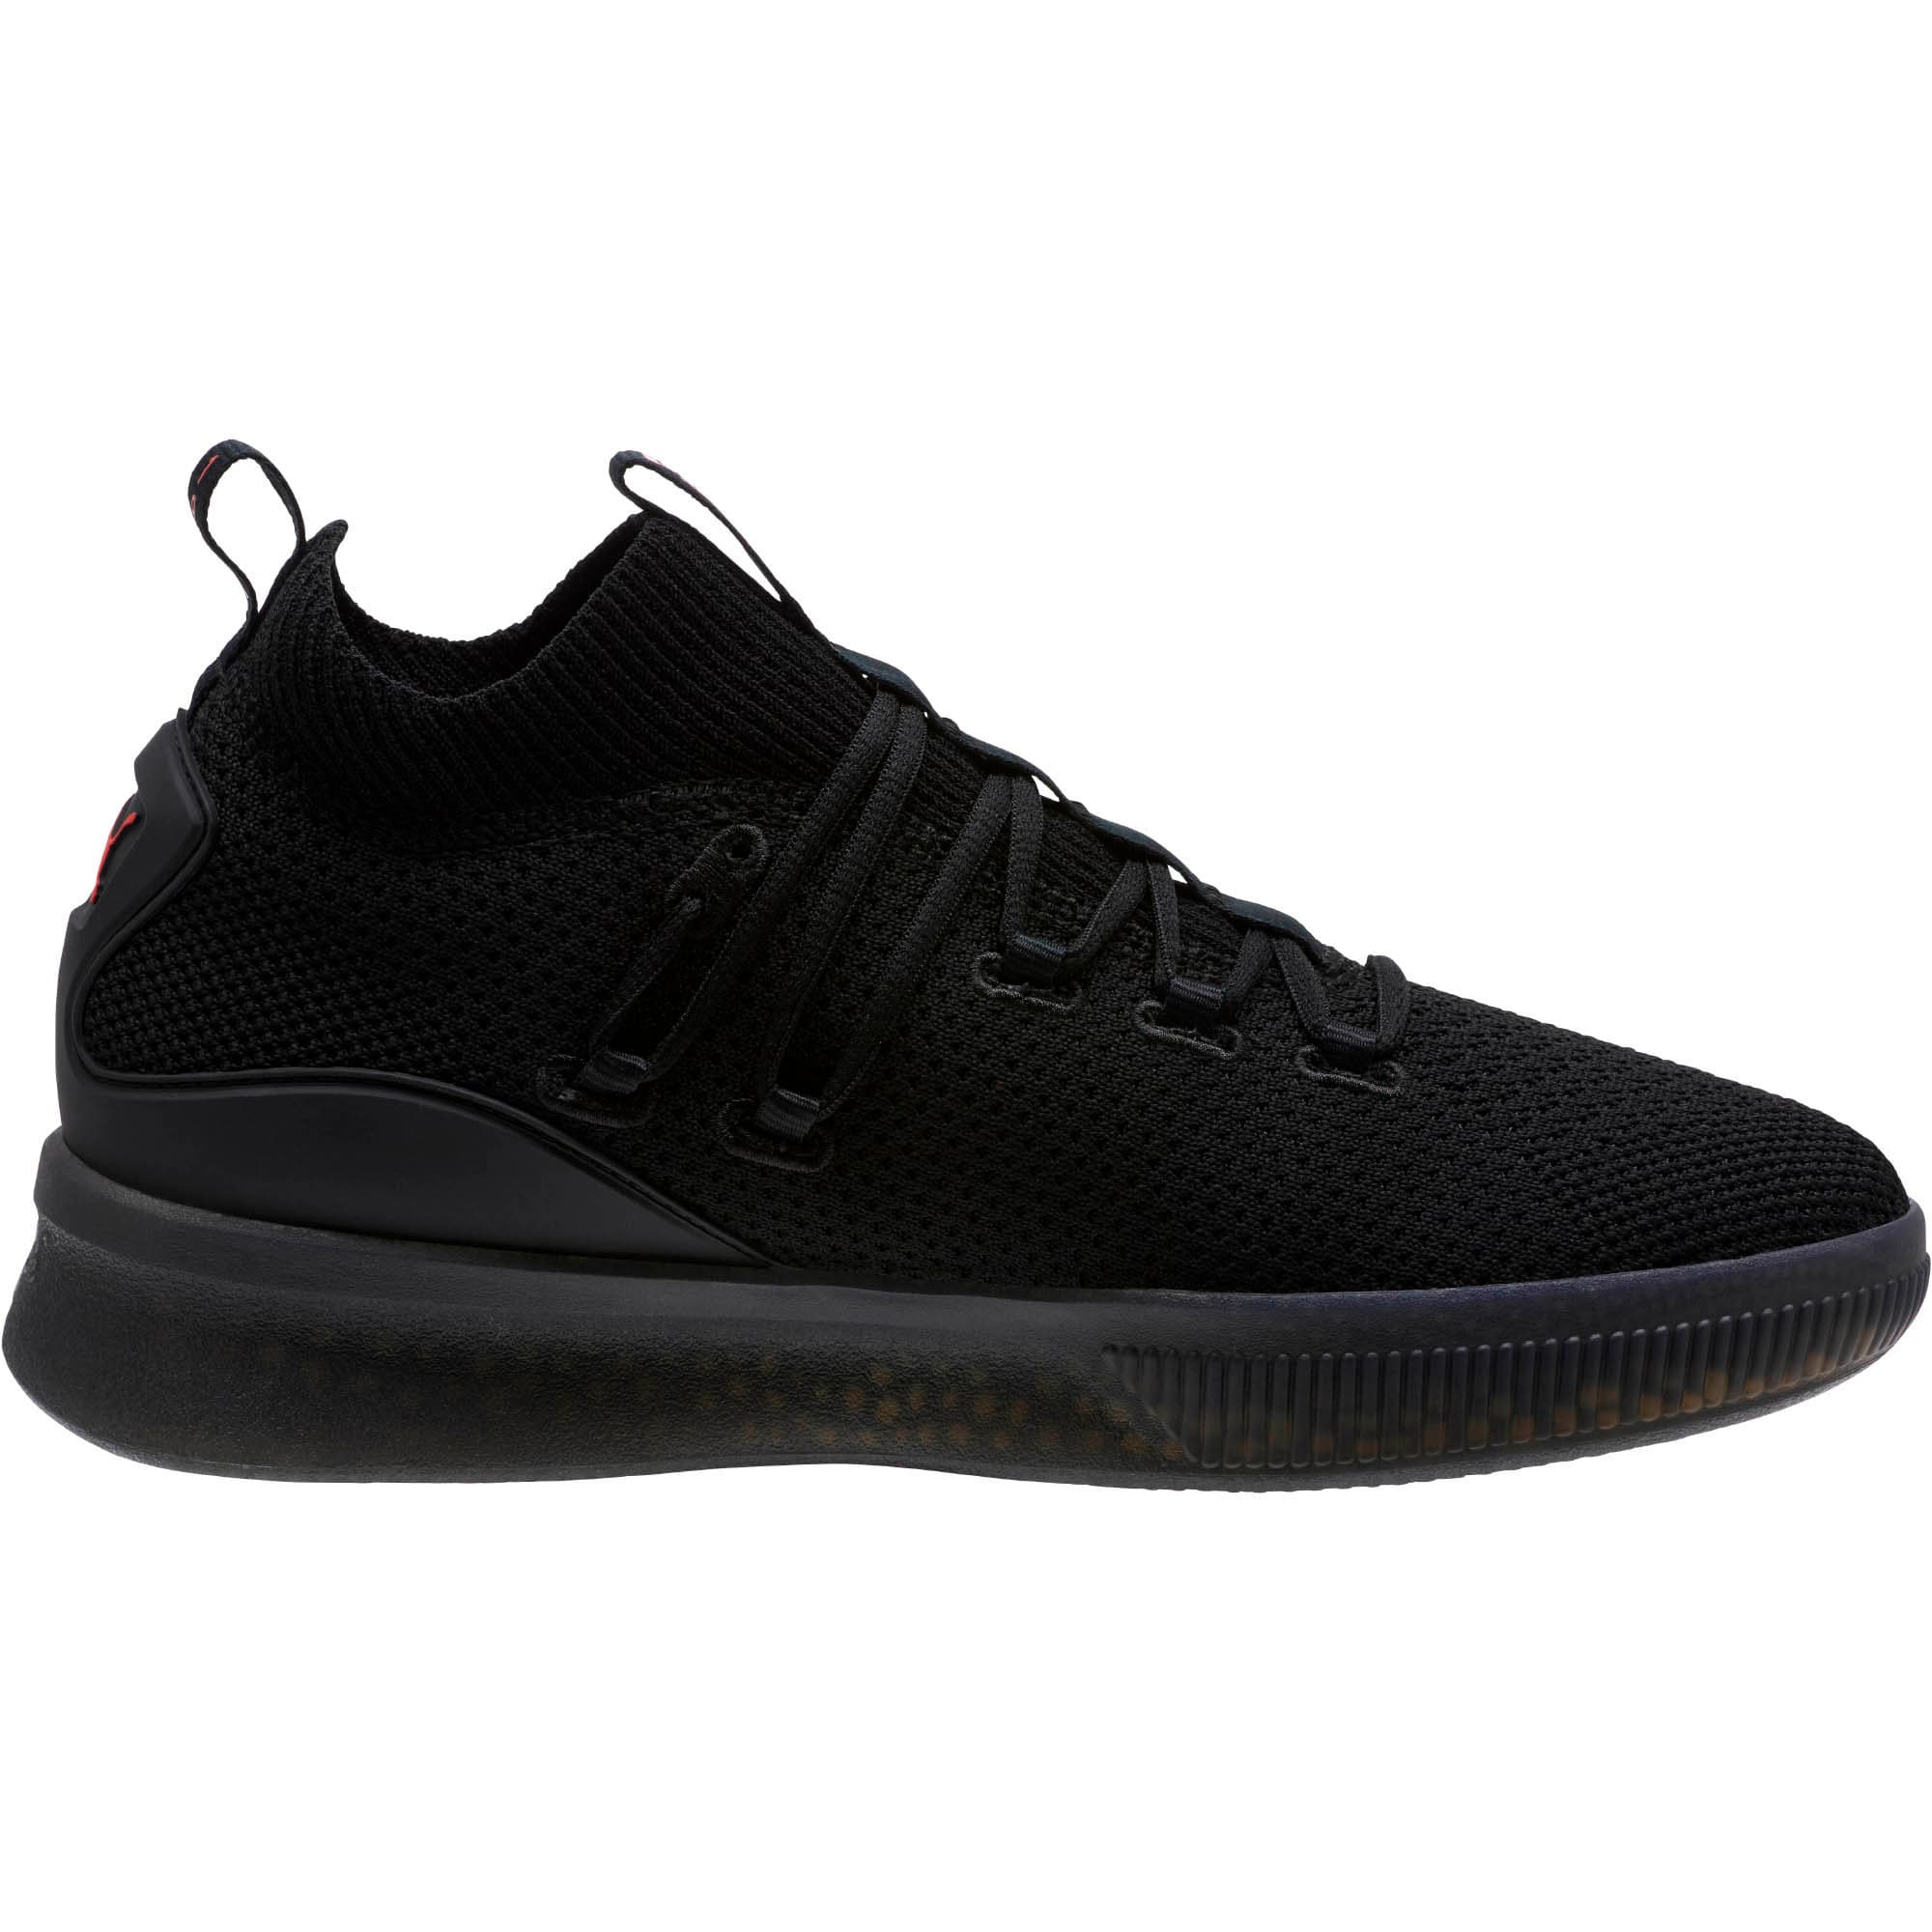 Thumbnail 4 of Clyde Court Core Basketball Shoes, Puma Black-High Risk Red, medium